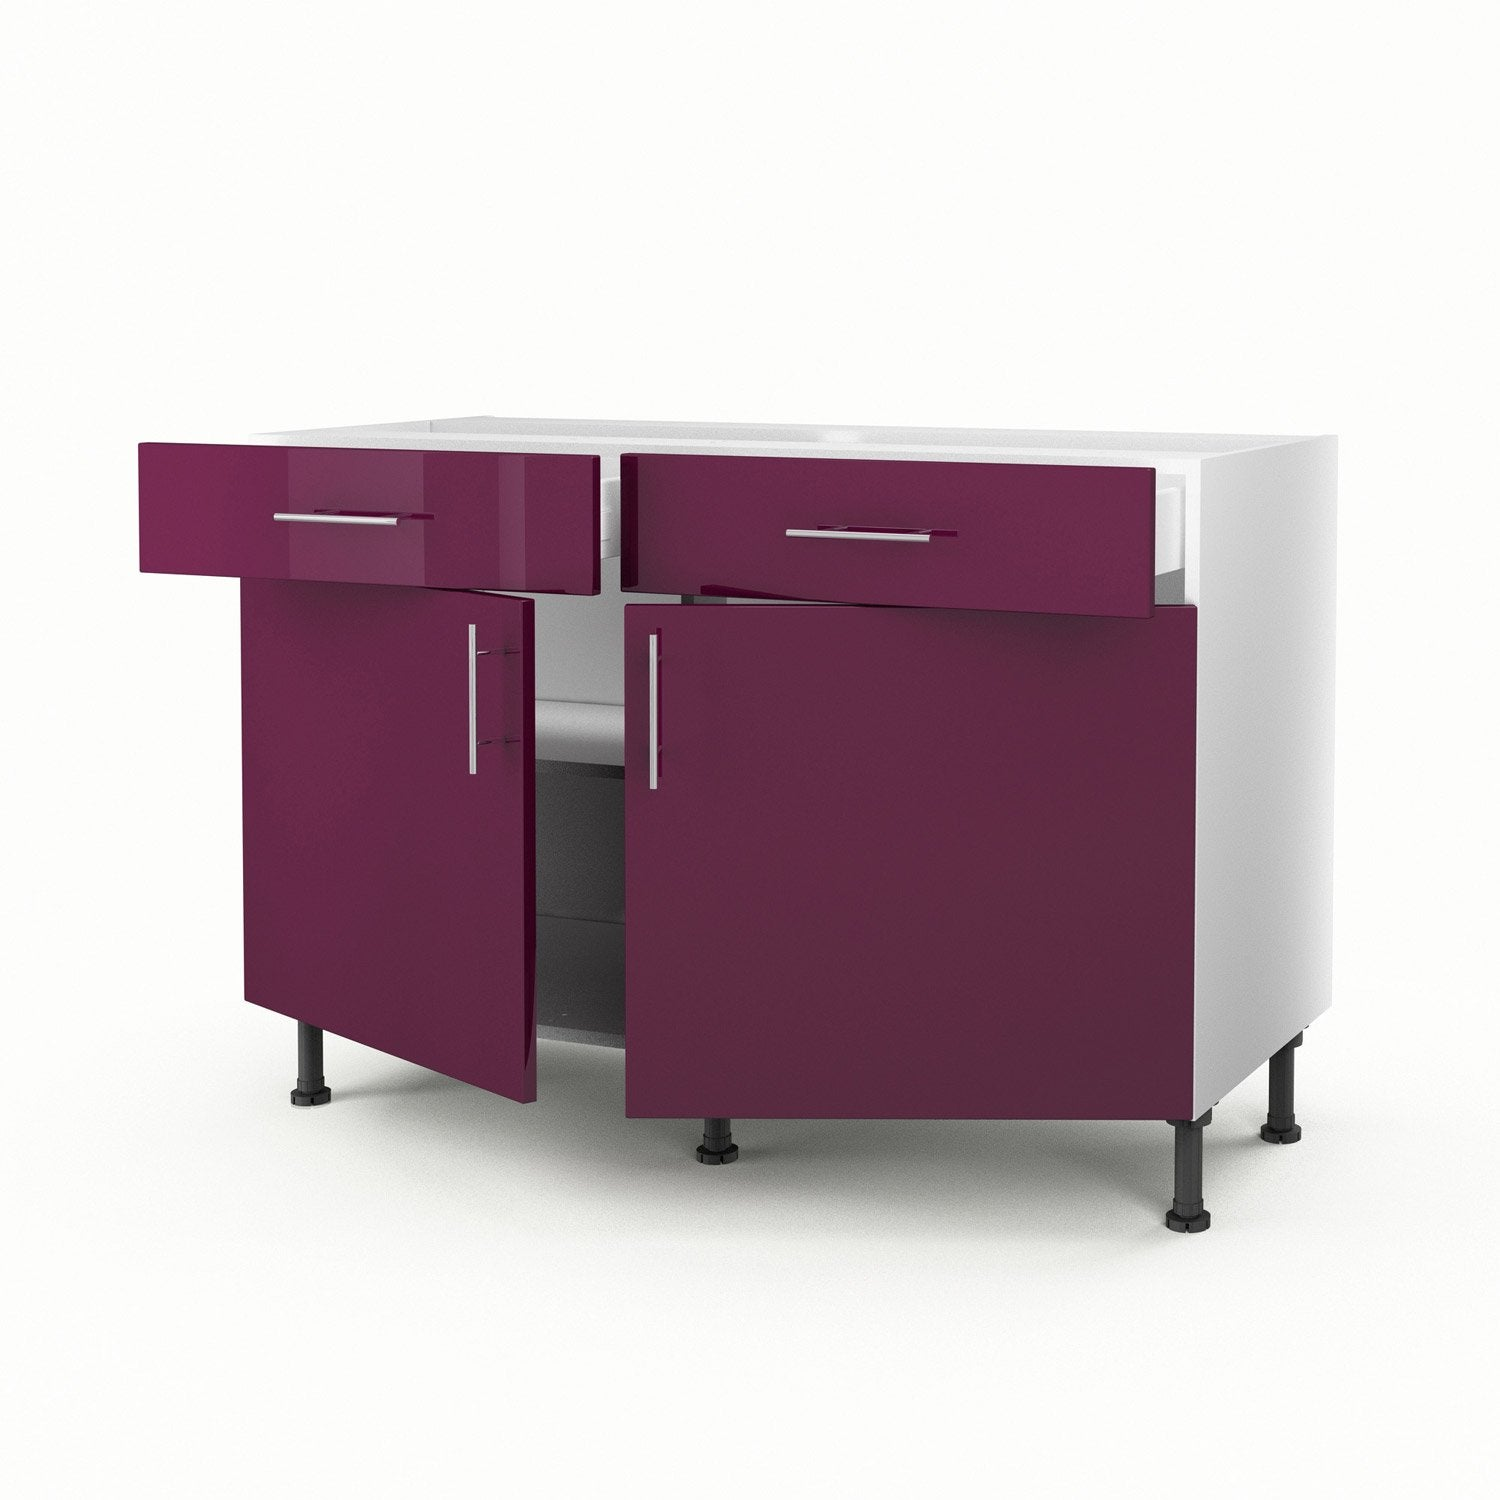 meuble de cuisine bas violet 2 portes 2 tiroirs rio. Black Bedroom Furniture Sets. Home Design Ideas